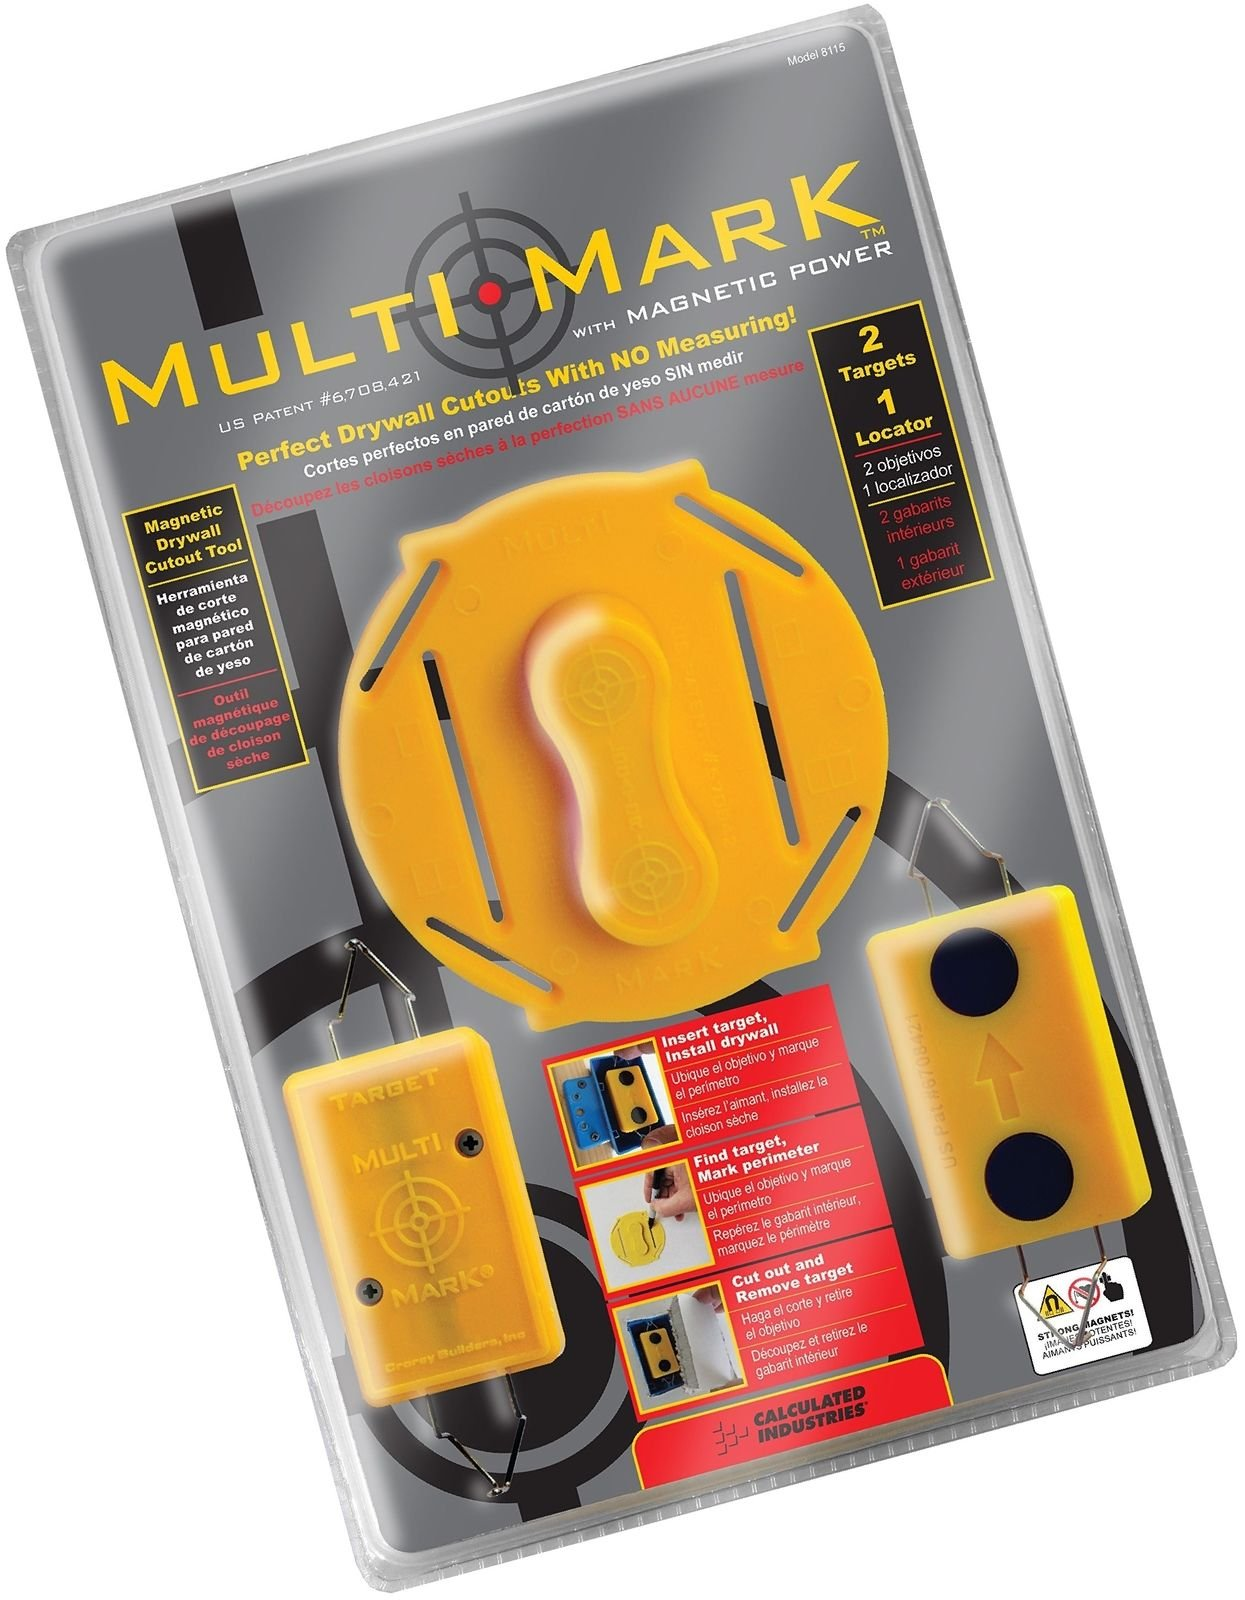 Multi Mark Drywall Cutout Locator Tool by Empower Elegance